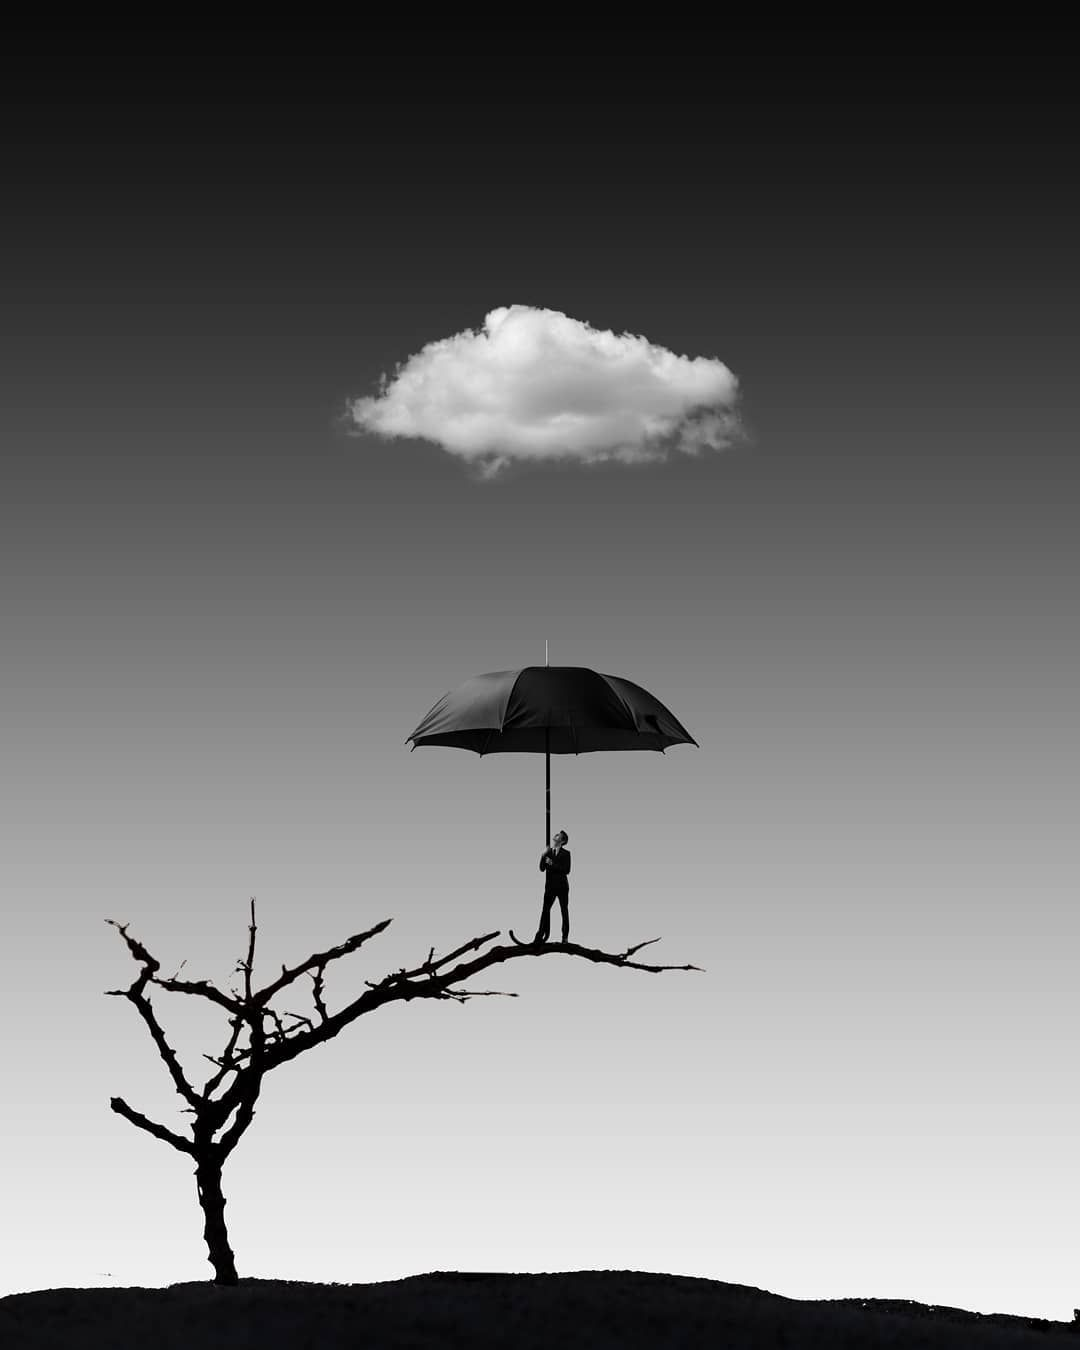 The compromise is a good umbrella, but a bad roof. (James Russell Lowell) . . . Compositing, CG and bnw edi #bestumbrella